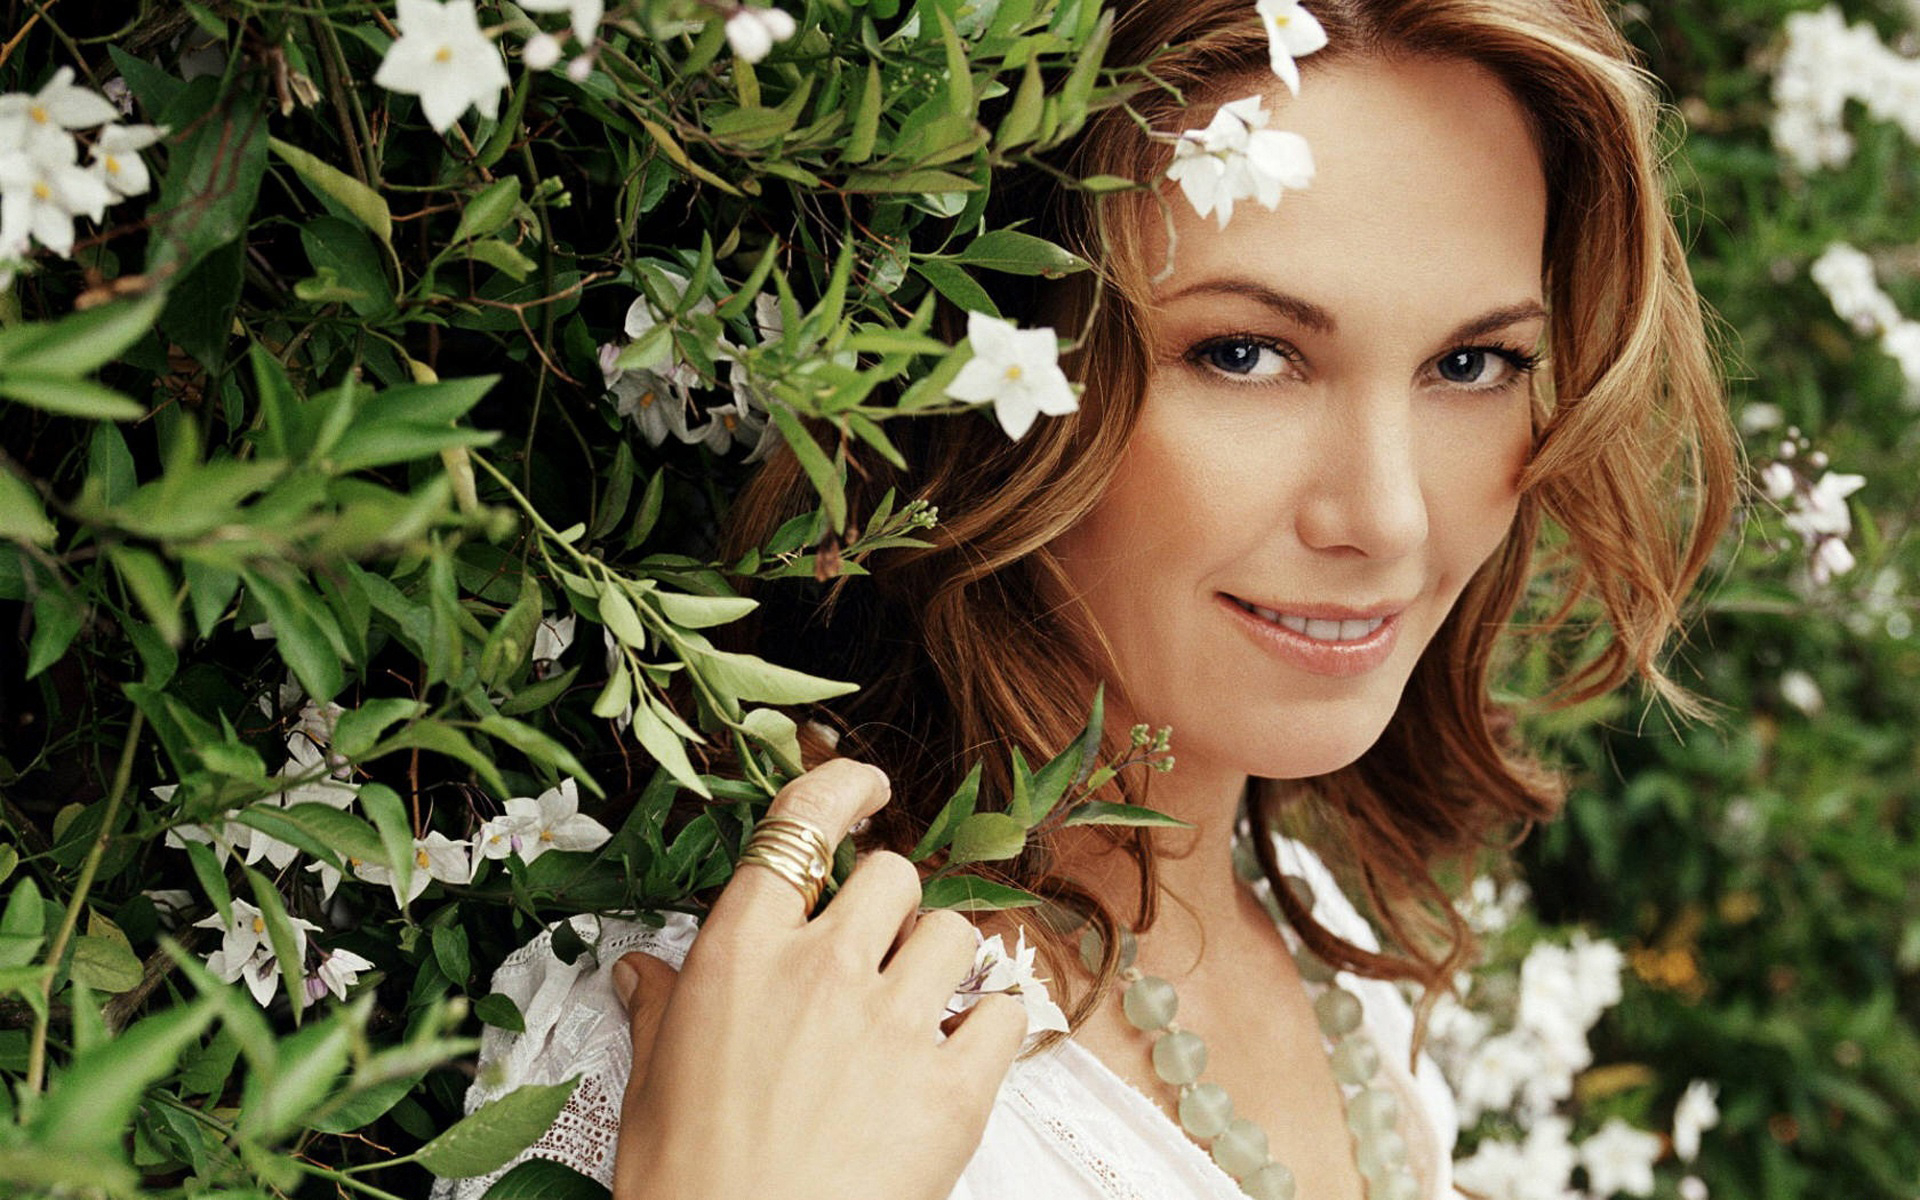 diane lane desktop wallpaper 58168